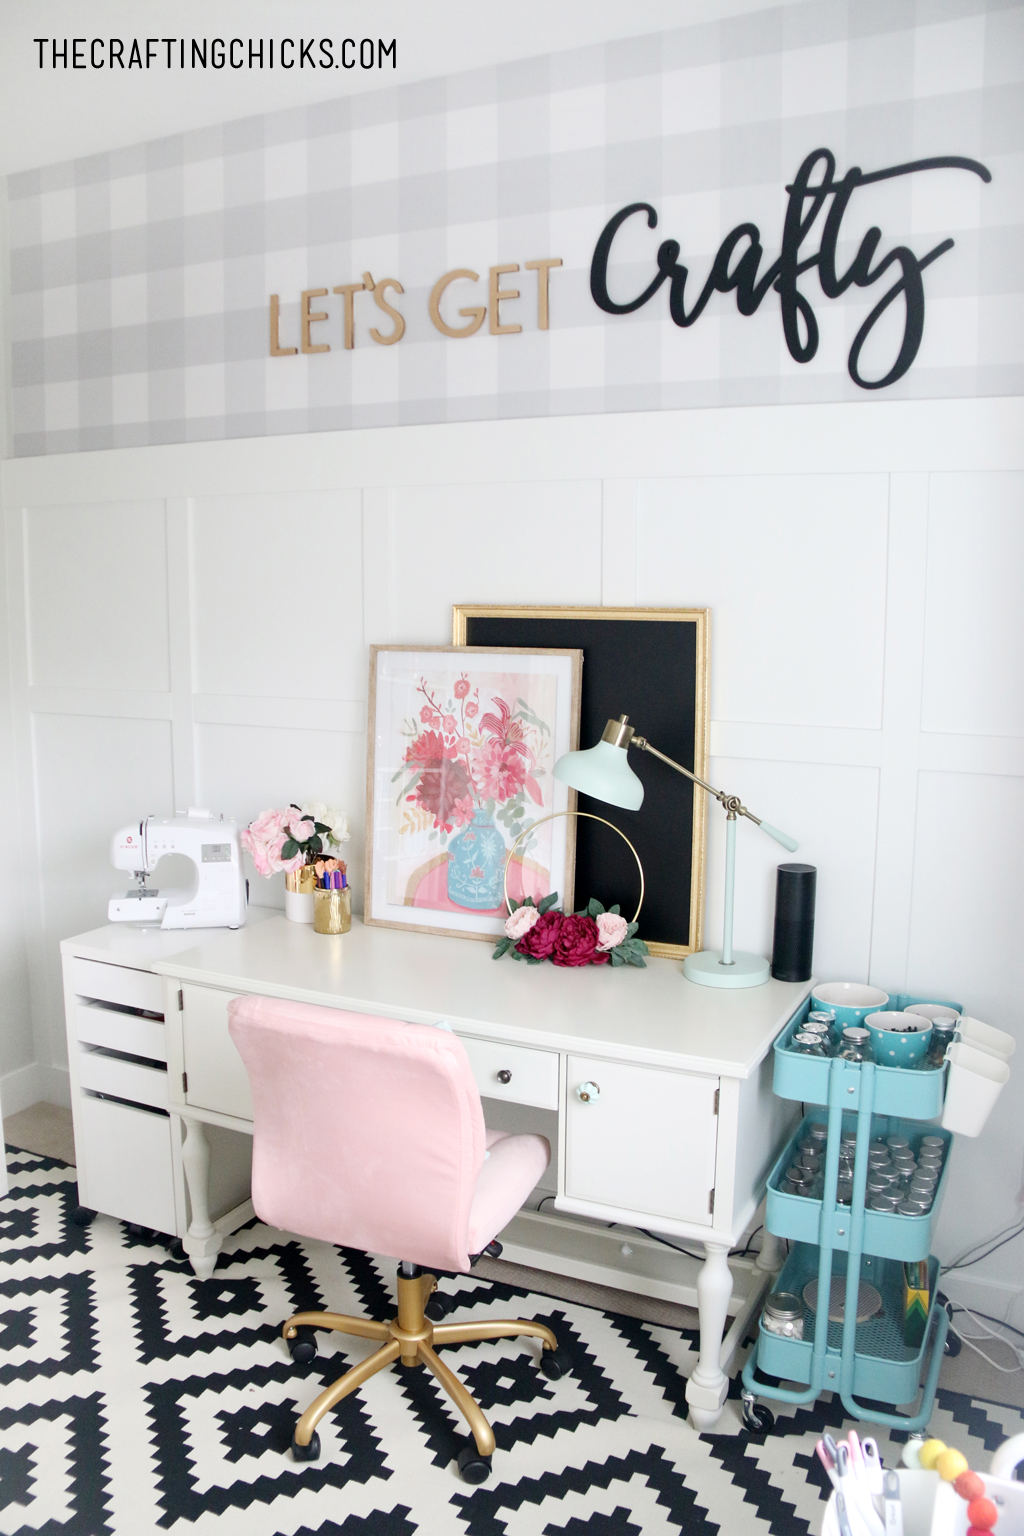 White desk with pink office chair. Floral picture and sewing machine off to the side.